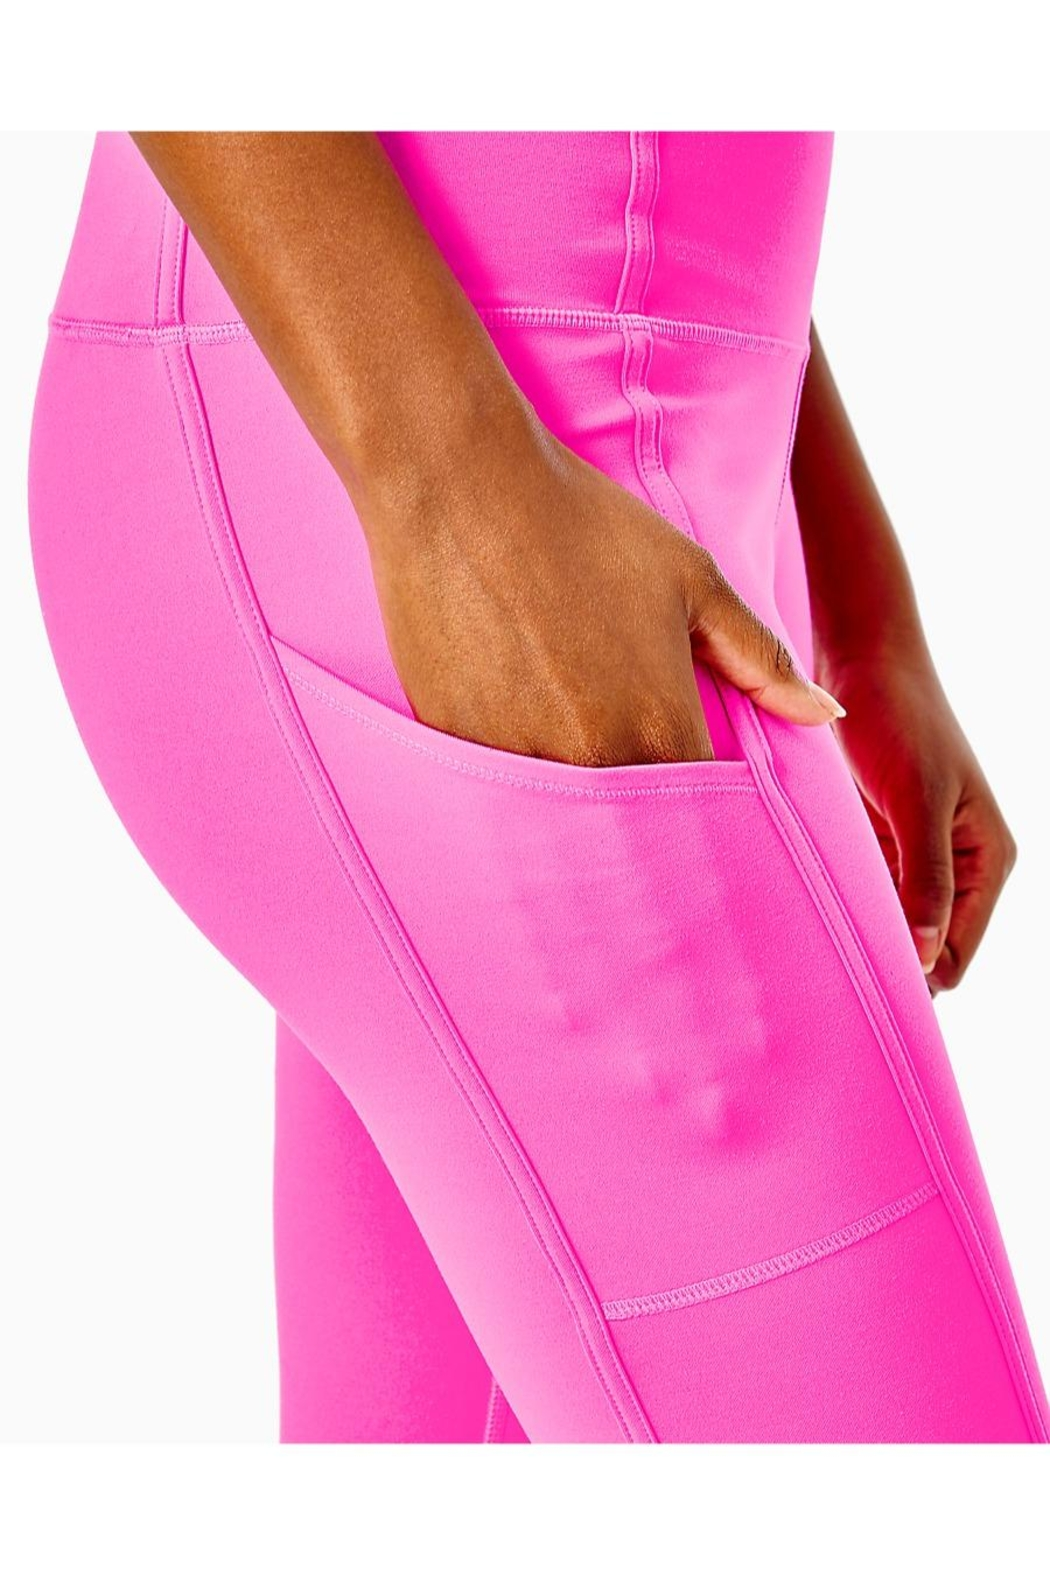 Lilly Pulitzer Weekender High-Rise Legging - Back Cropped Image